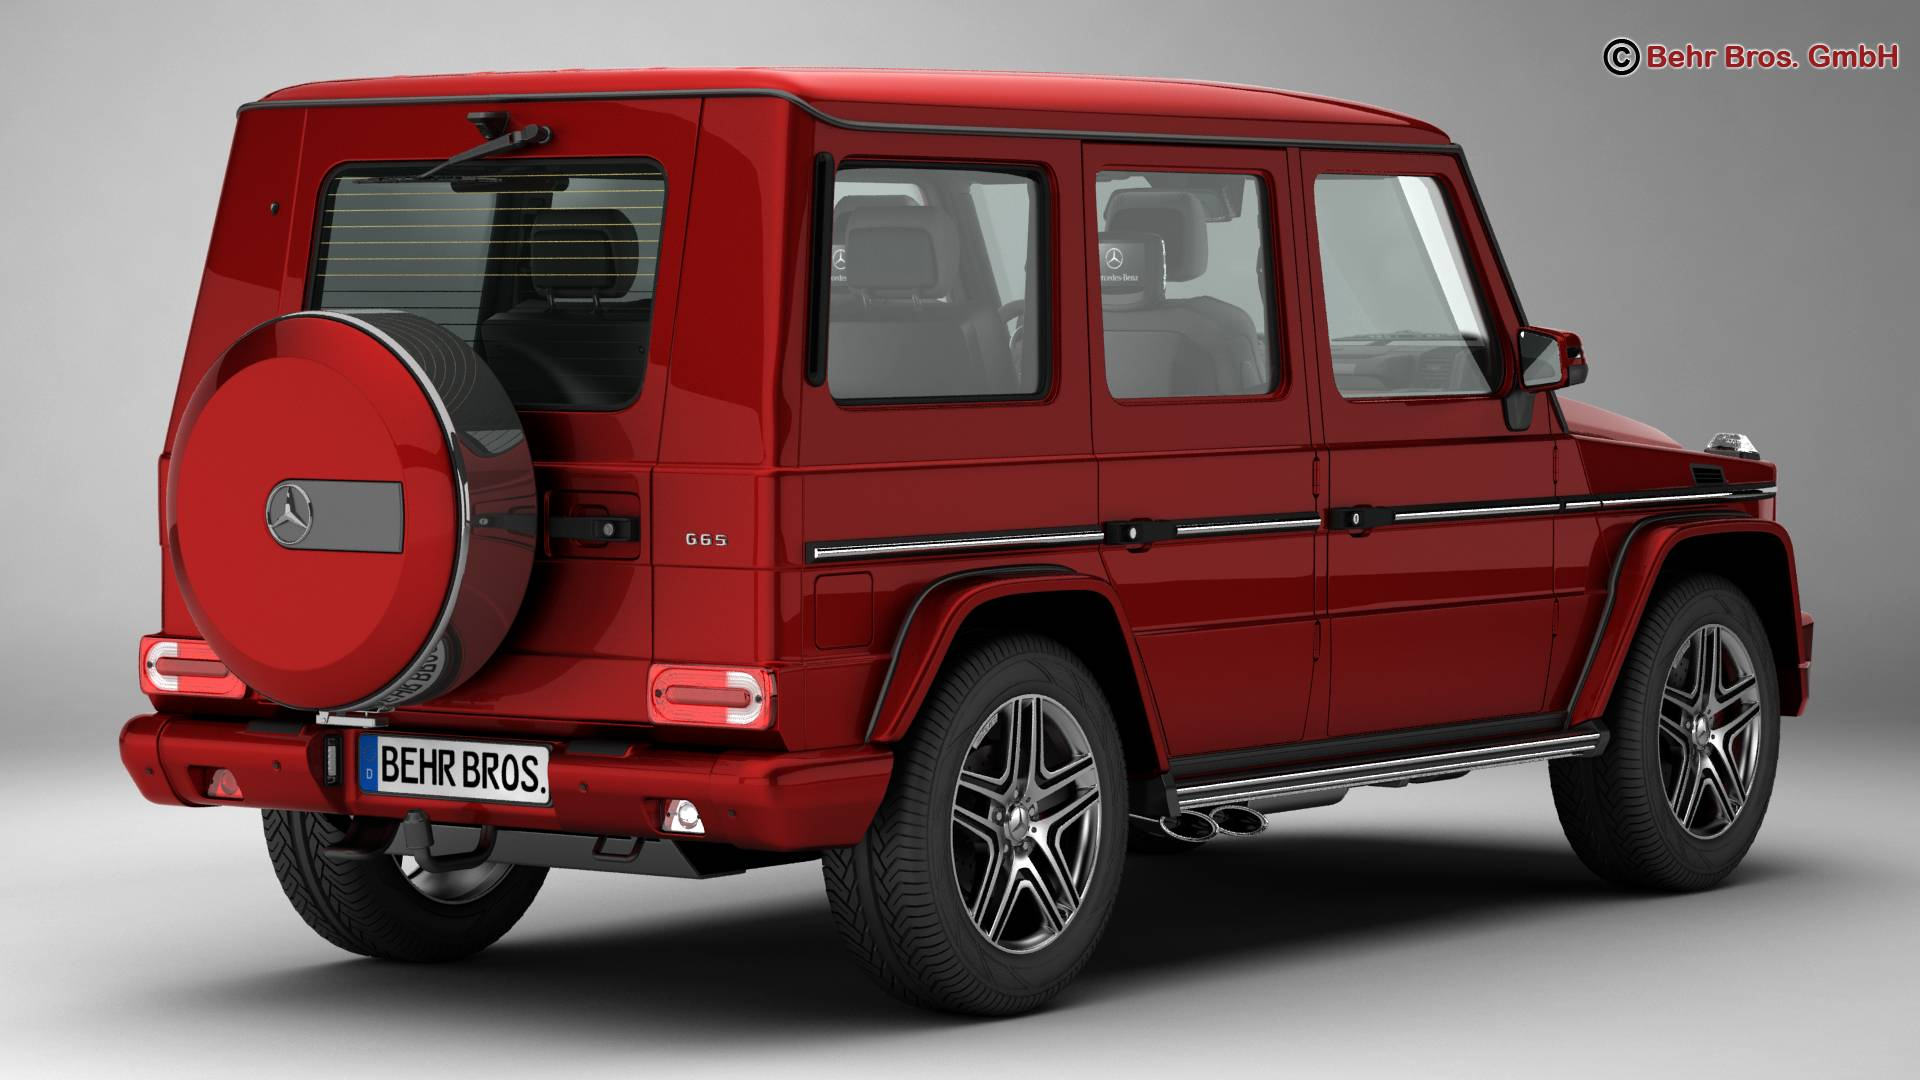 mercedes g class amg g65 2016 3d model buy mercedes g class amg g65 2016 3d model flatpyramid. Black Bedroom Furniture Sets. Home Design Ideas